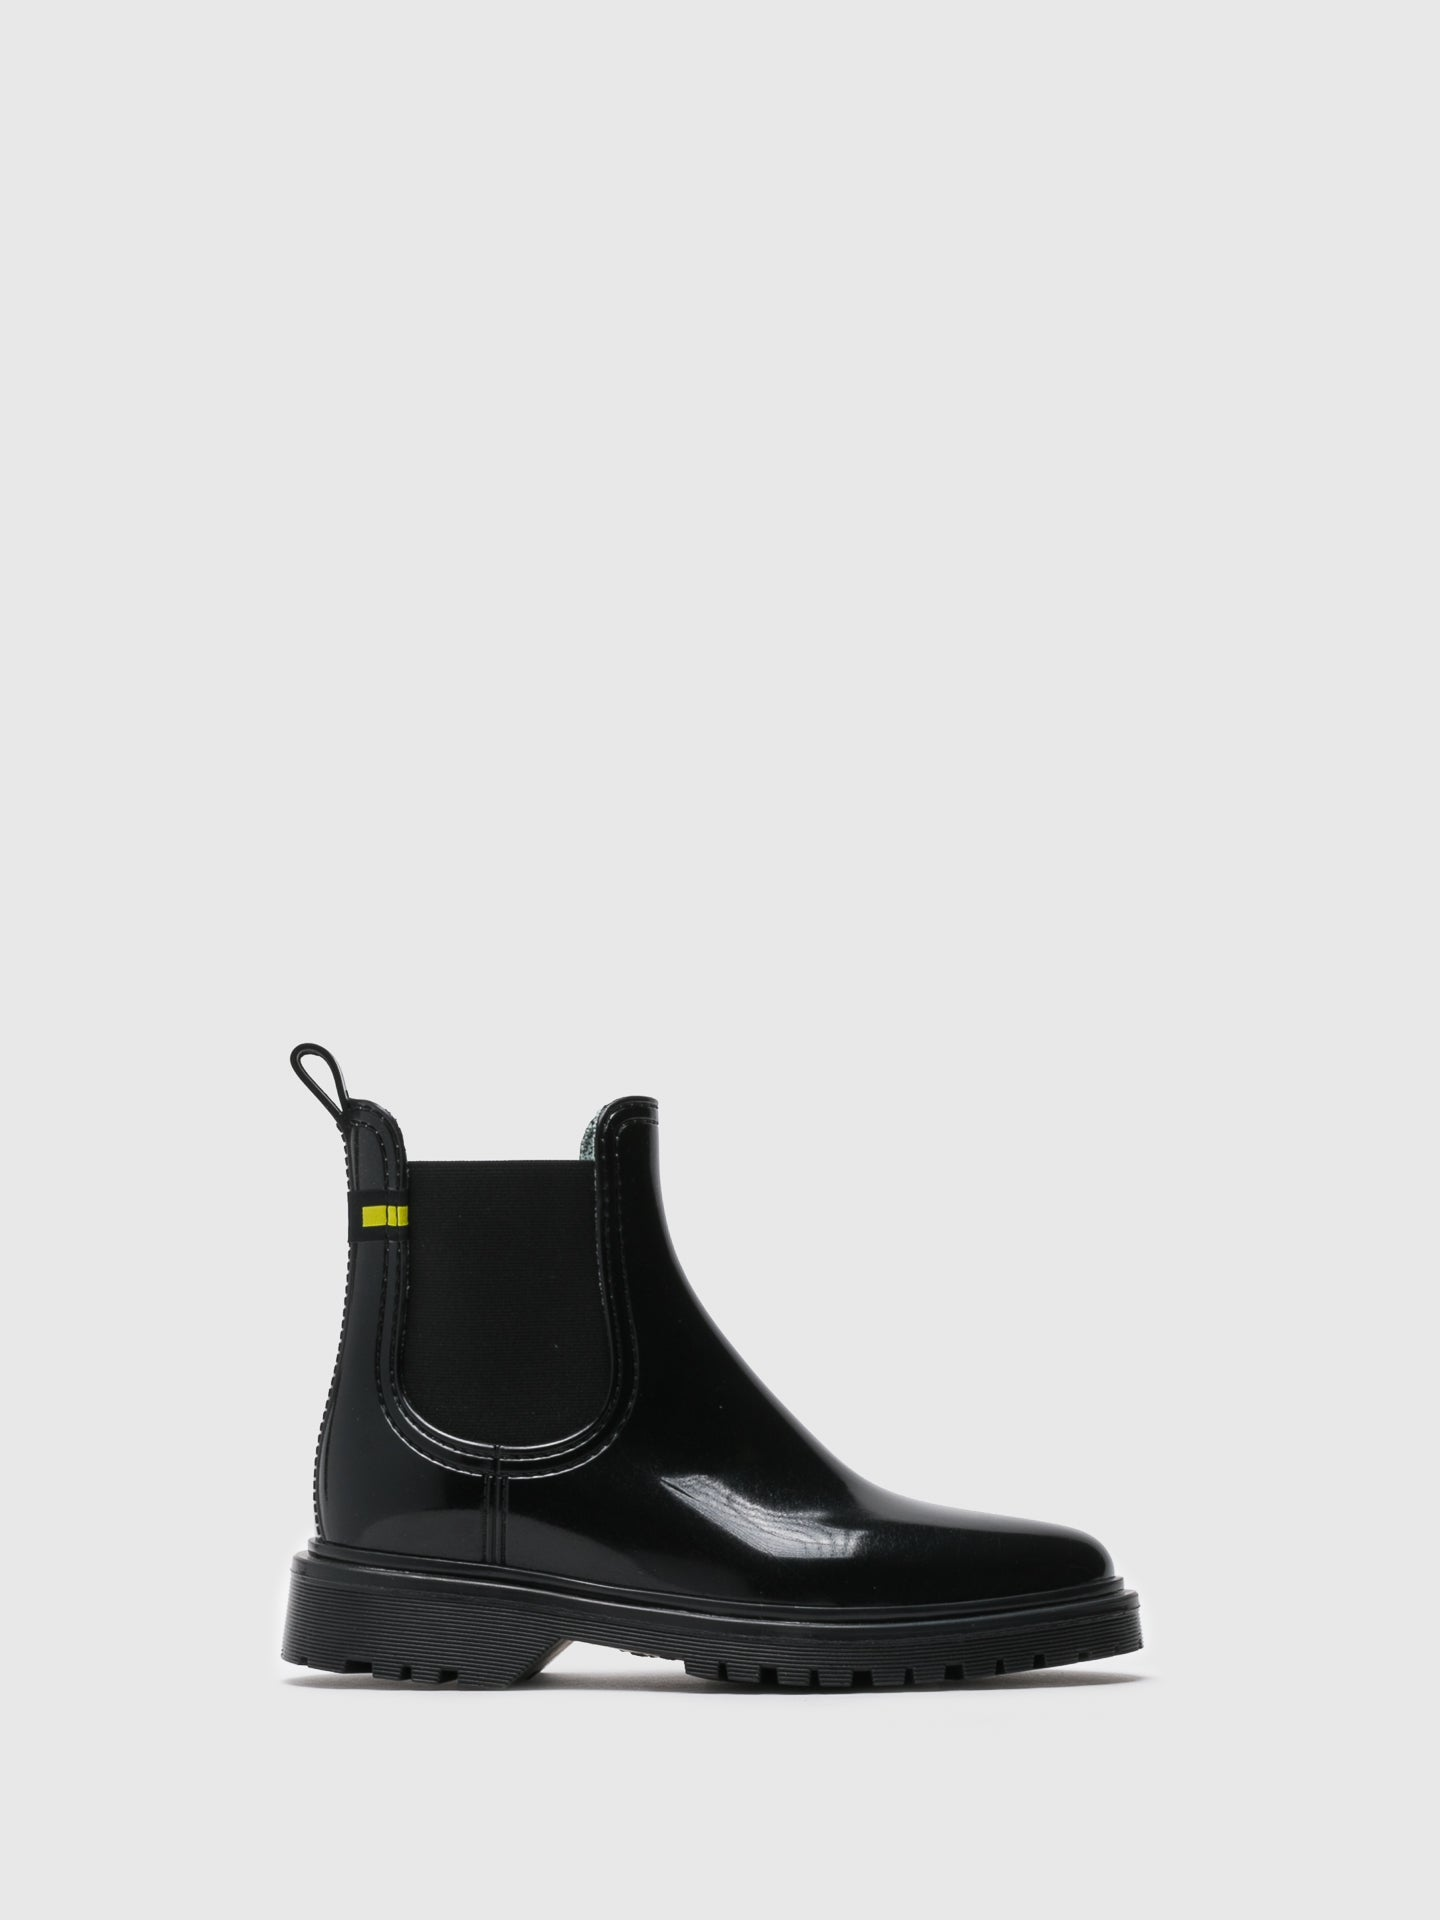 Lemon Jelly Stiefeletten im Chelsea-Stil in Noir